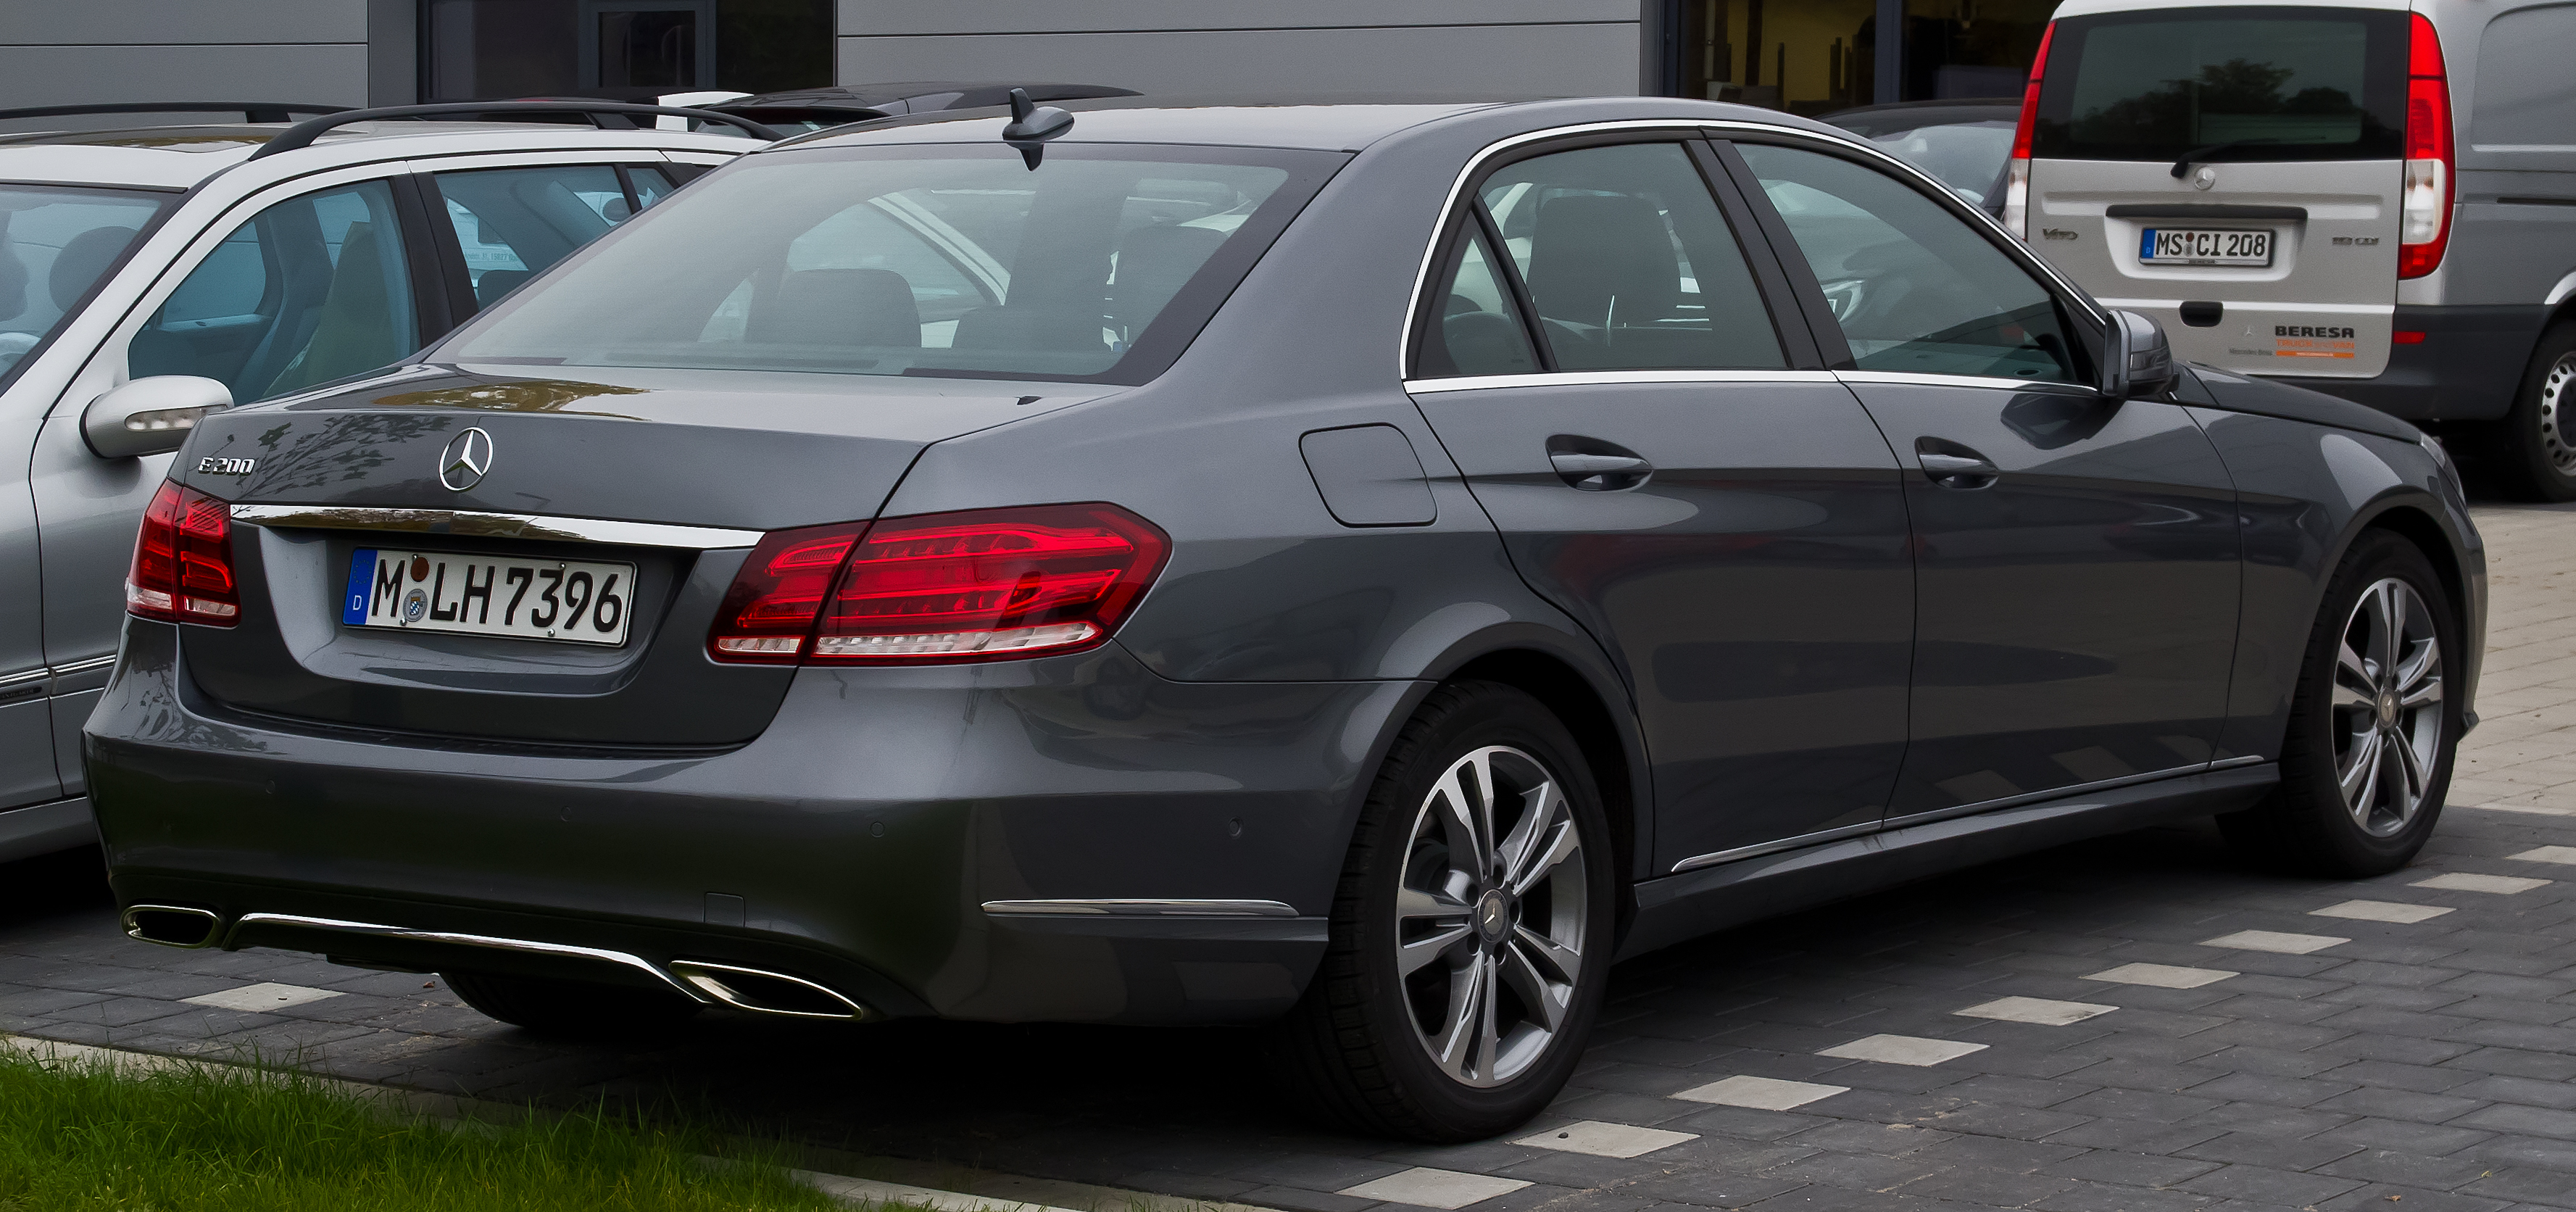 Mercedes Class C Coup Ef Bf Bd Blanche Toi Ouvrant